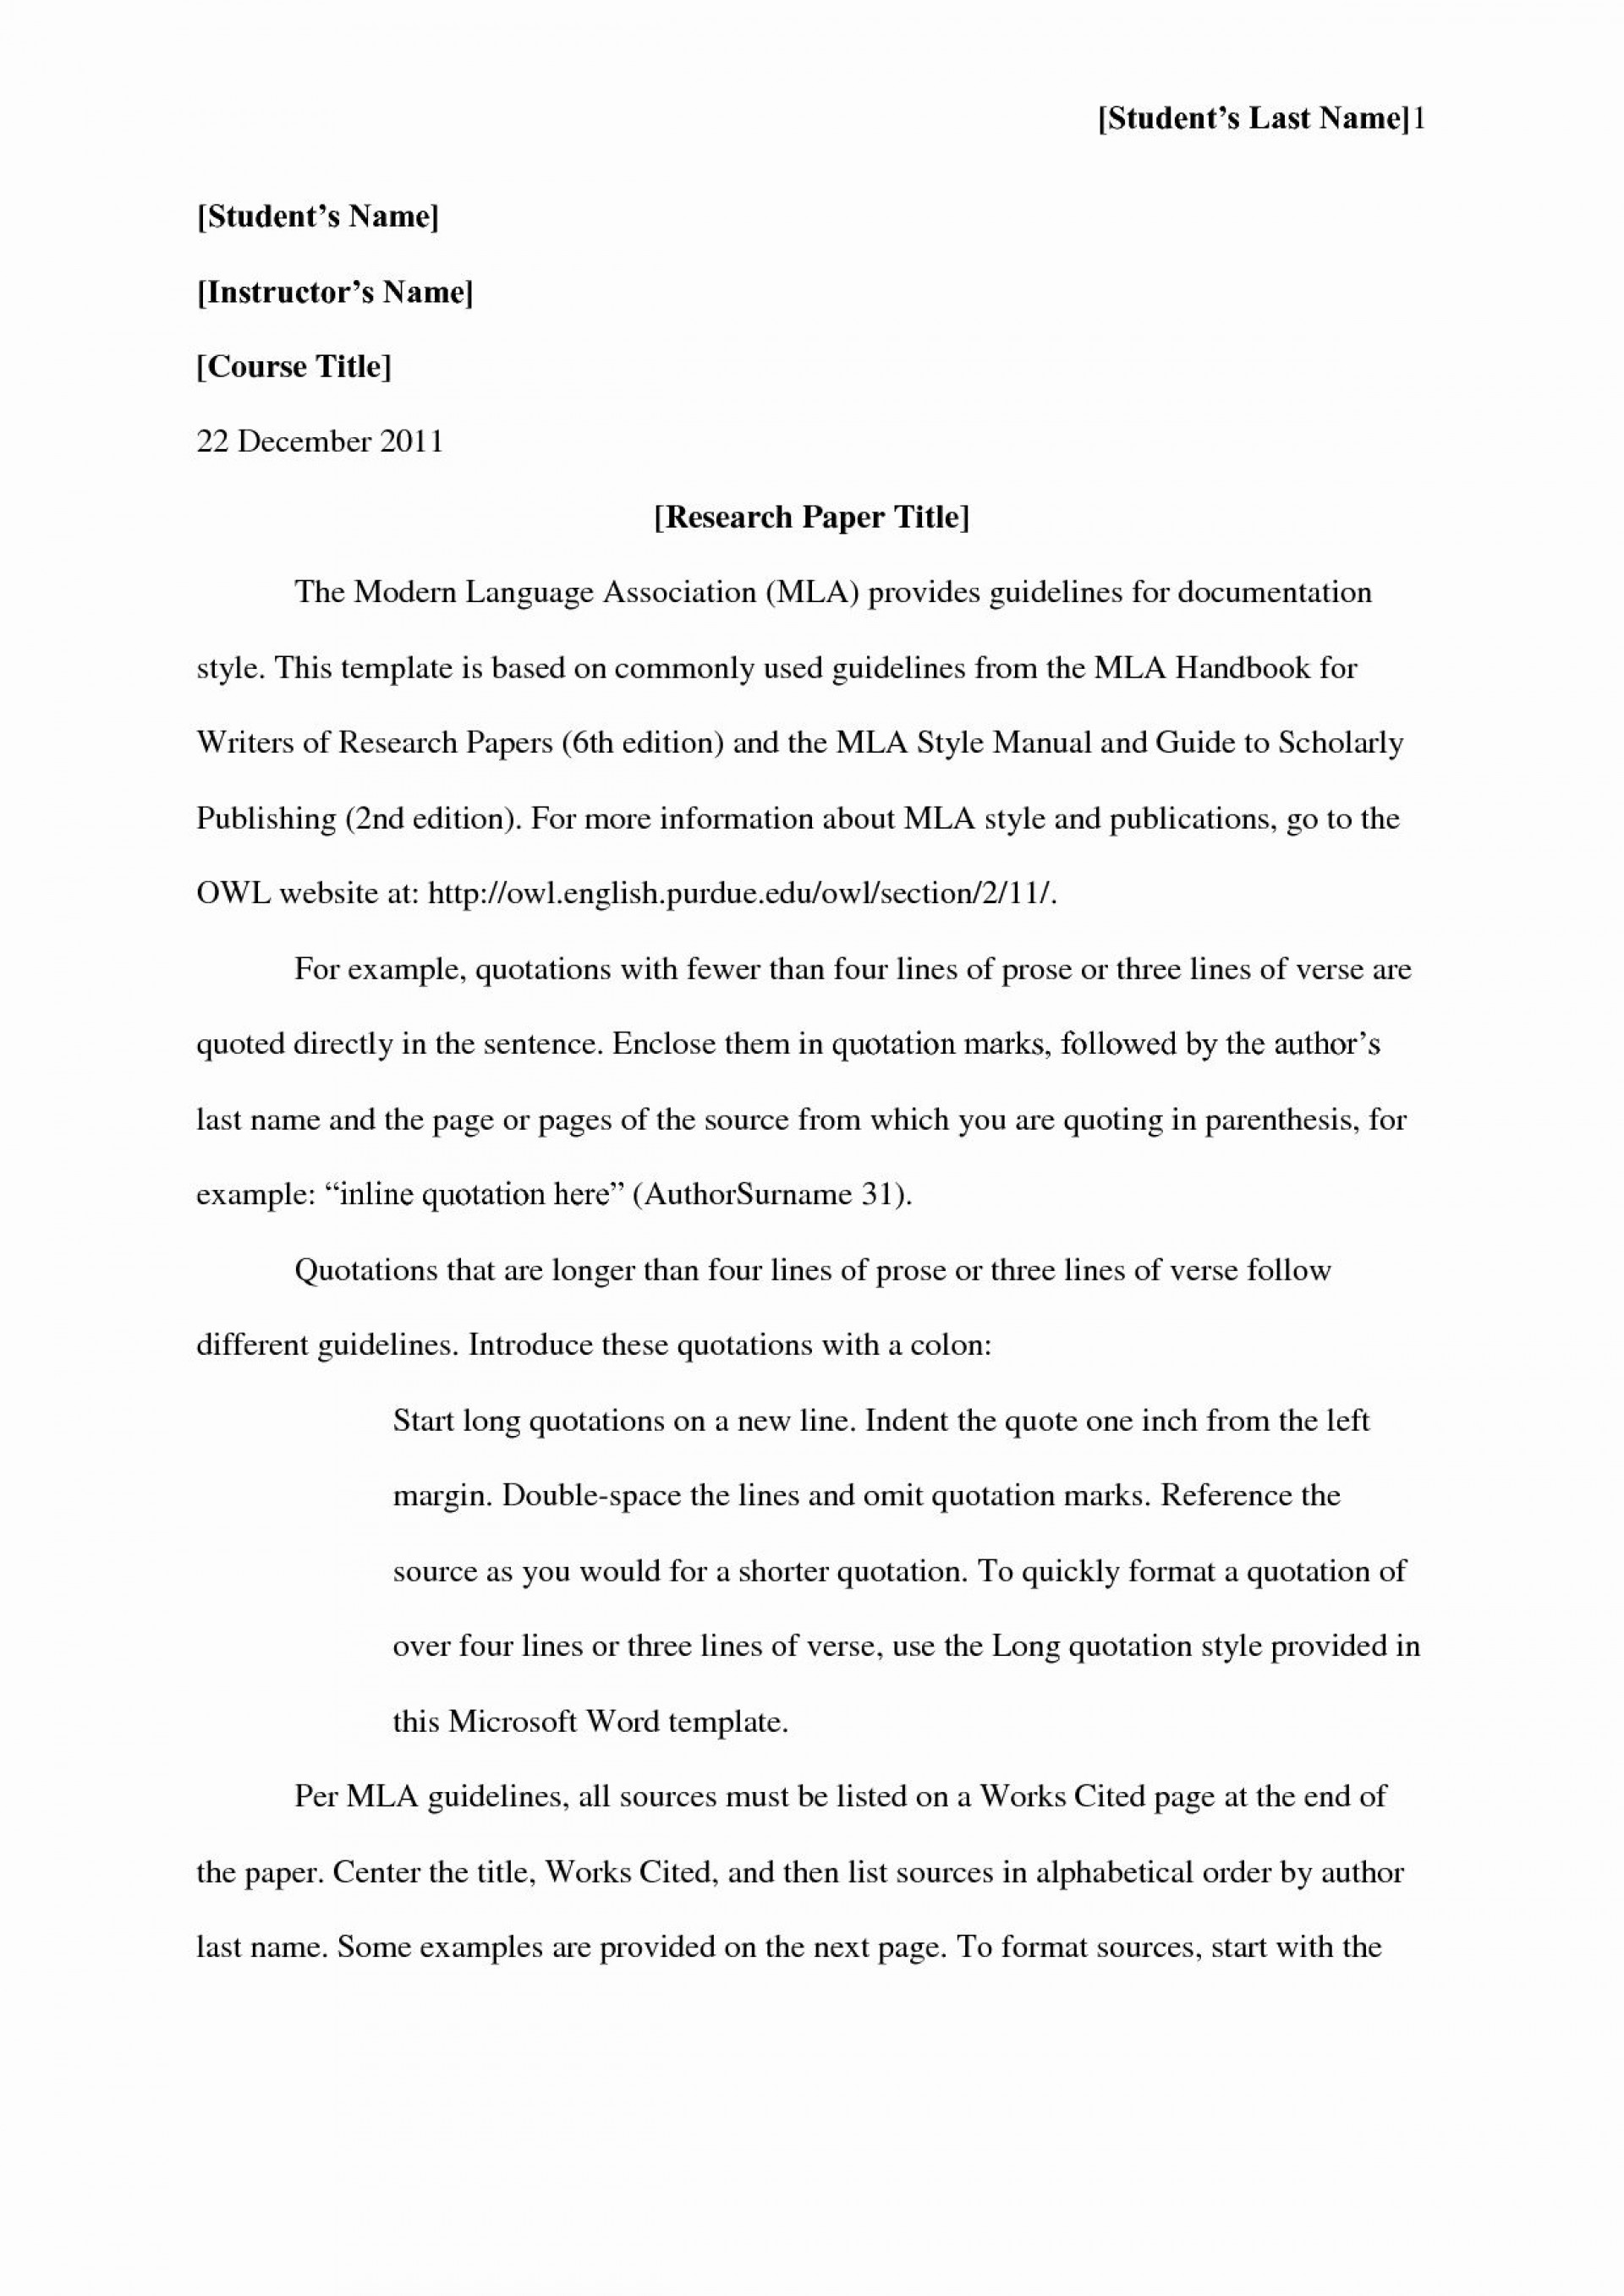 012 Mla Title Page Template Awesome Format Works Cited Scarlet Letter Best Of Apa Style Essay Research Impressive Purdue Owl Sample Reference Example 1920